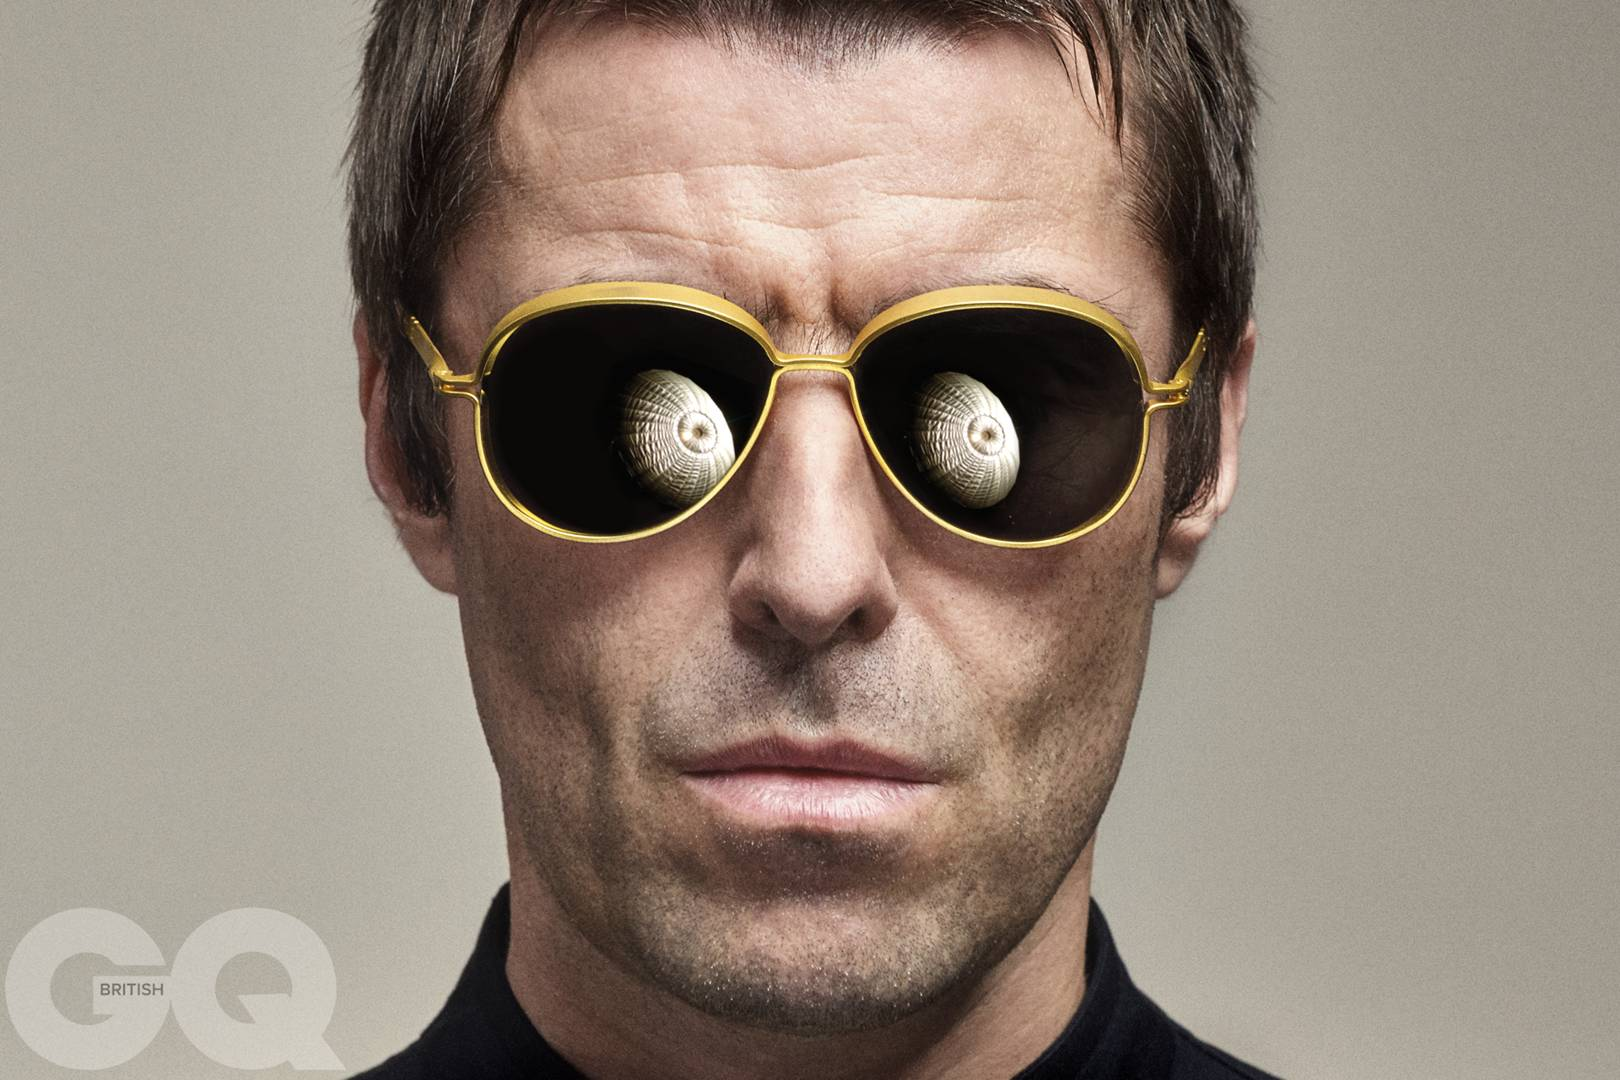 24a7e4bfcc2 Liam Gallagher   My thing was the whole cliché  the sex